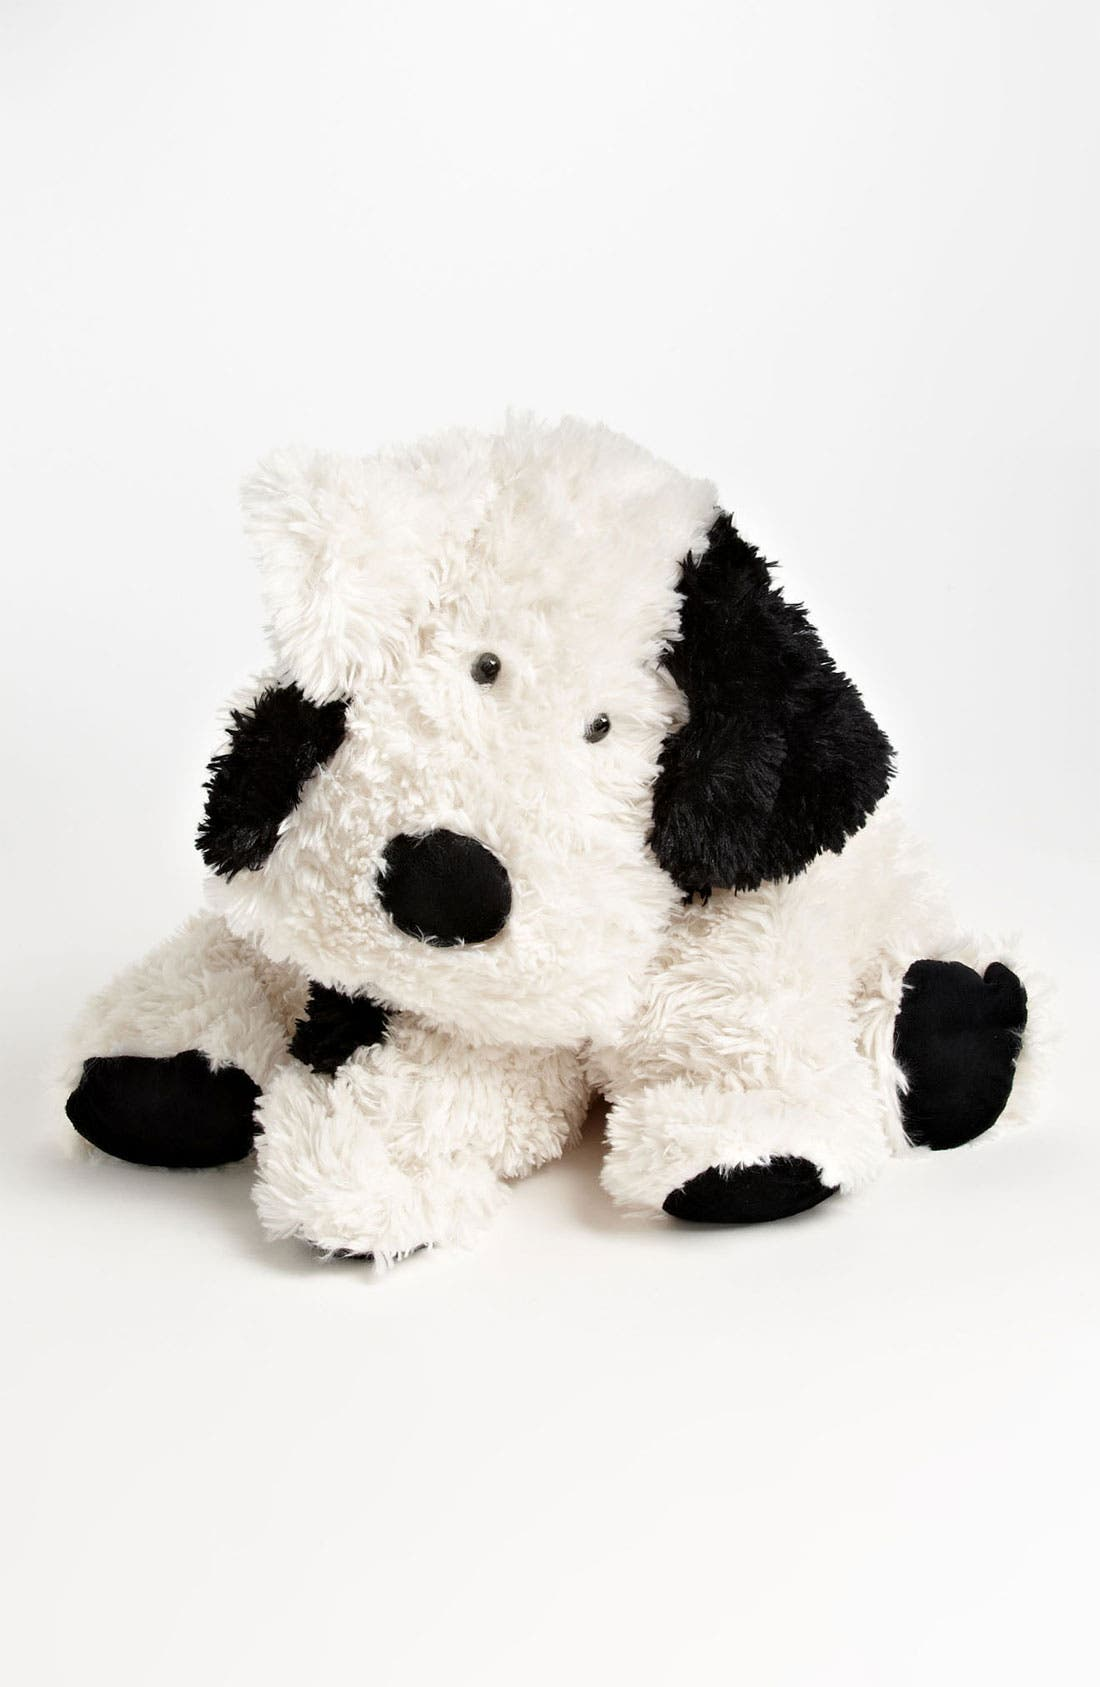 Alternate Image 1 Selected - Jellycat 'Large Truffle' Stuffed Animal